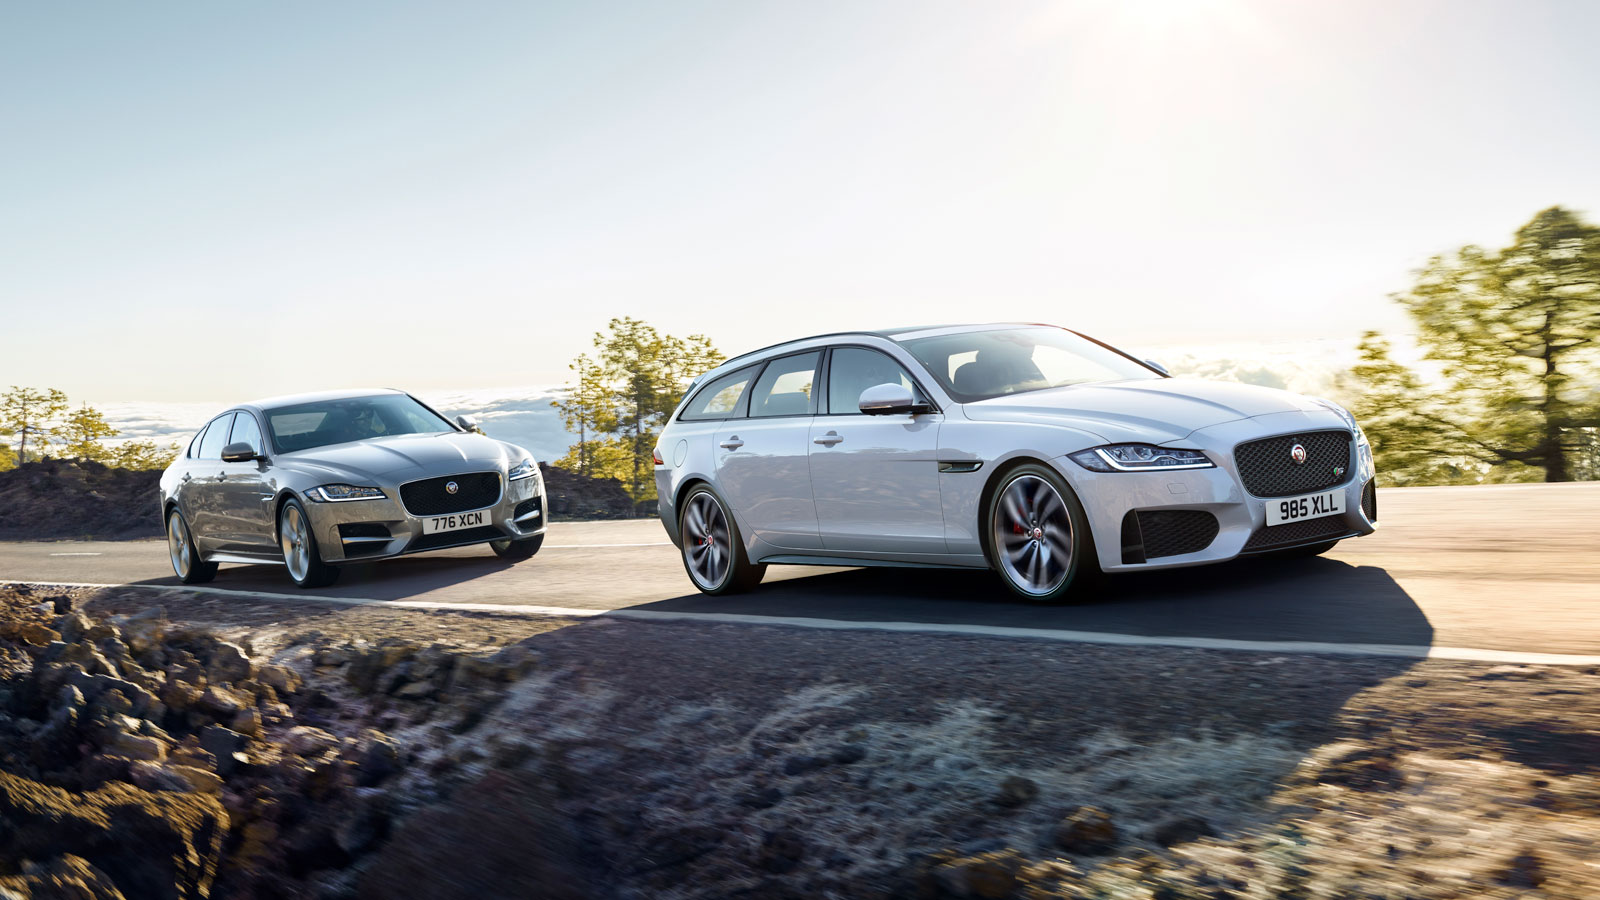 Jaguar XF 2.0d (180) Chequered Flag SPECIAL EDITIONS image 2